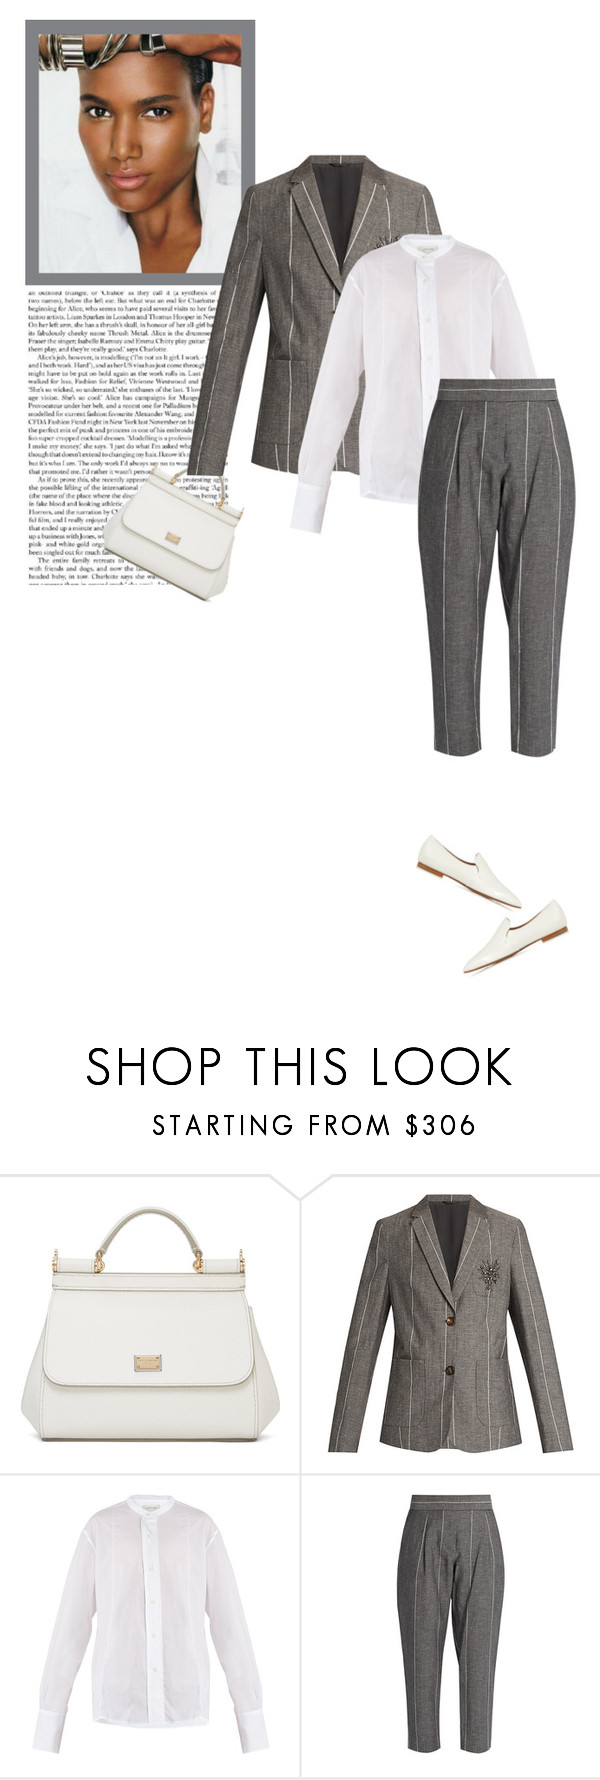 """Spring Office Wear"" by marion-fashionista-diva-miller ❤ liked on Polyvore featuring Dolce&Gabbana, Brunello Cucinelli, Lemaire and The Row"